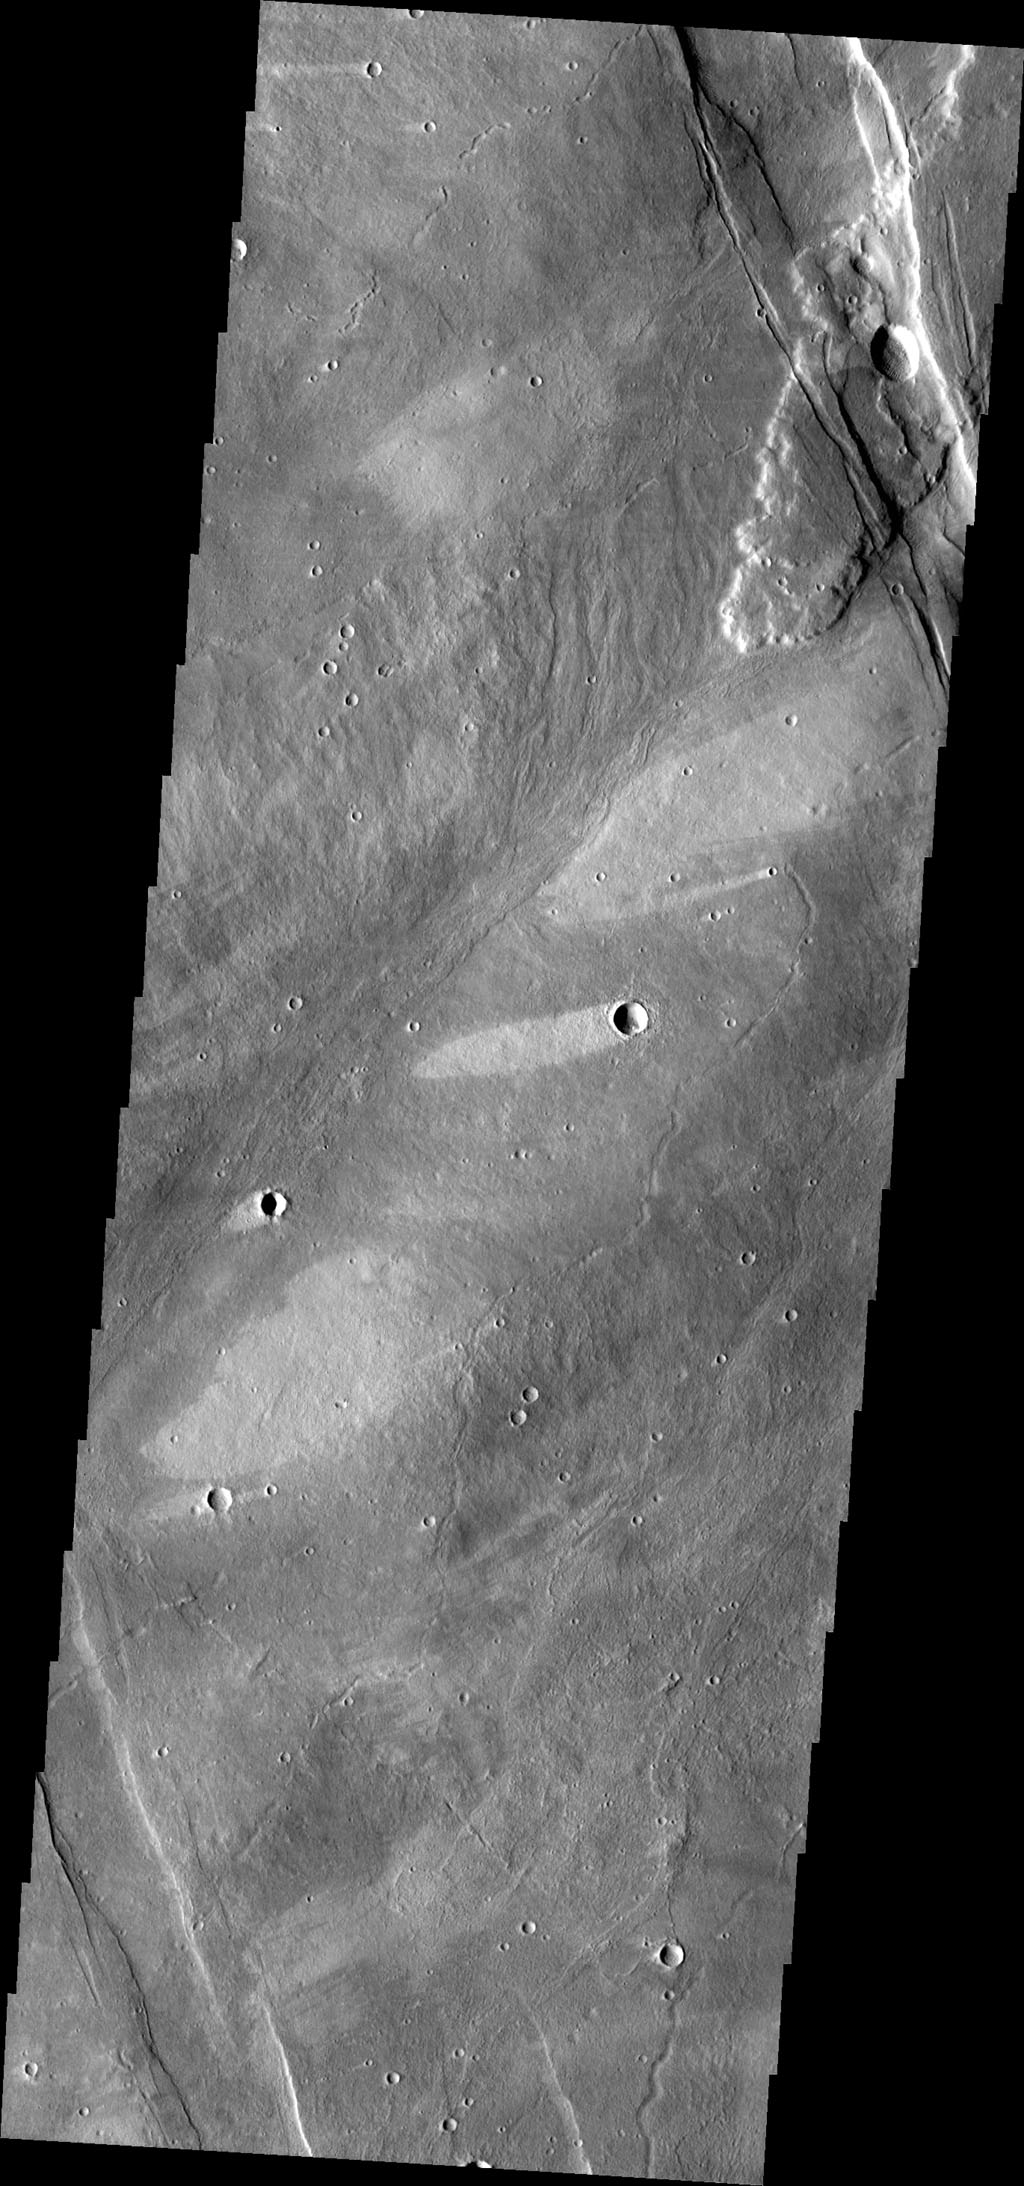 The windstreaks in this image from NASA's 2001 Mars Odyssey spacecraft are located on the southwestern flank of Alba Mons.